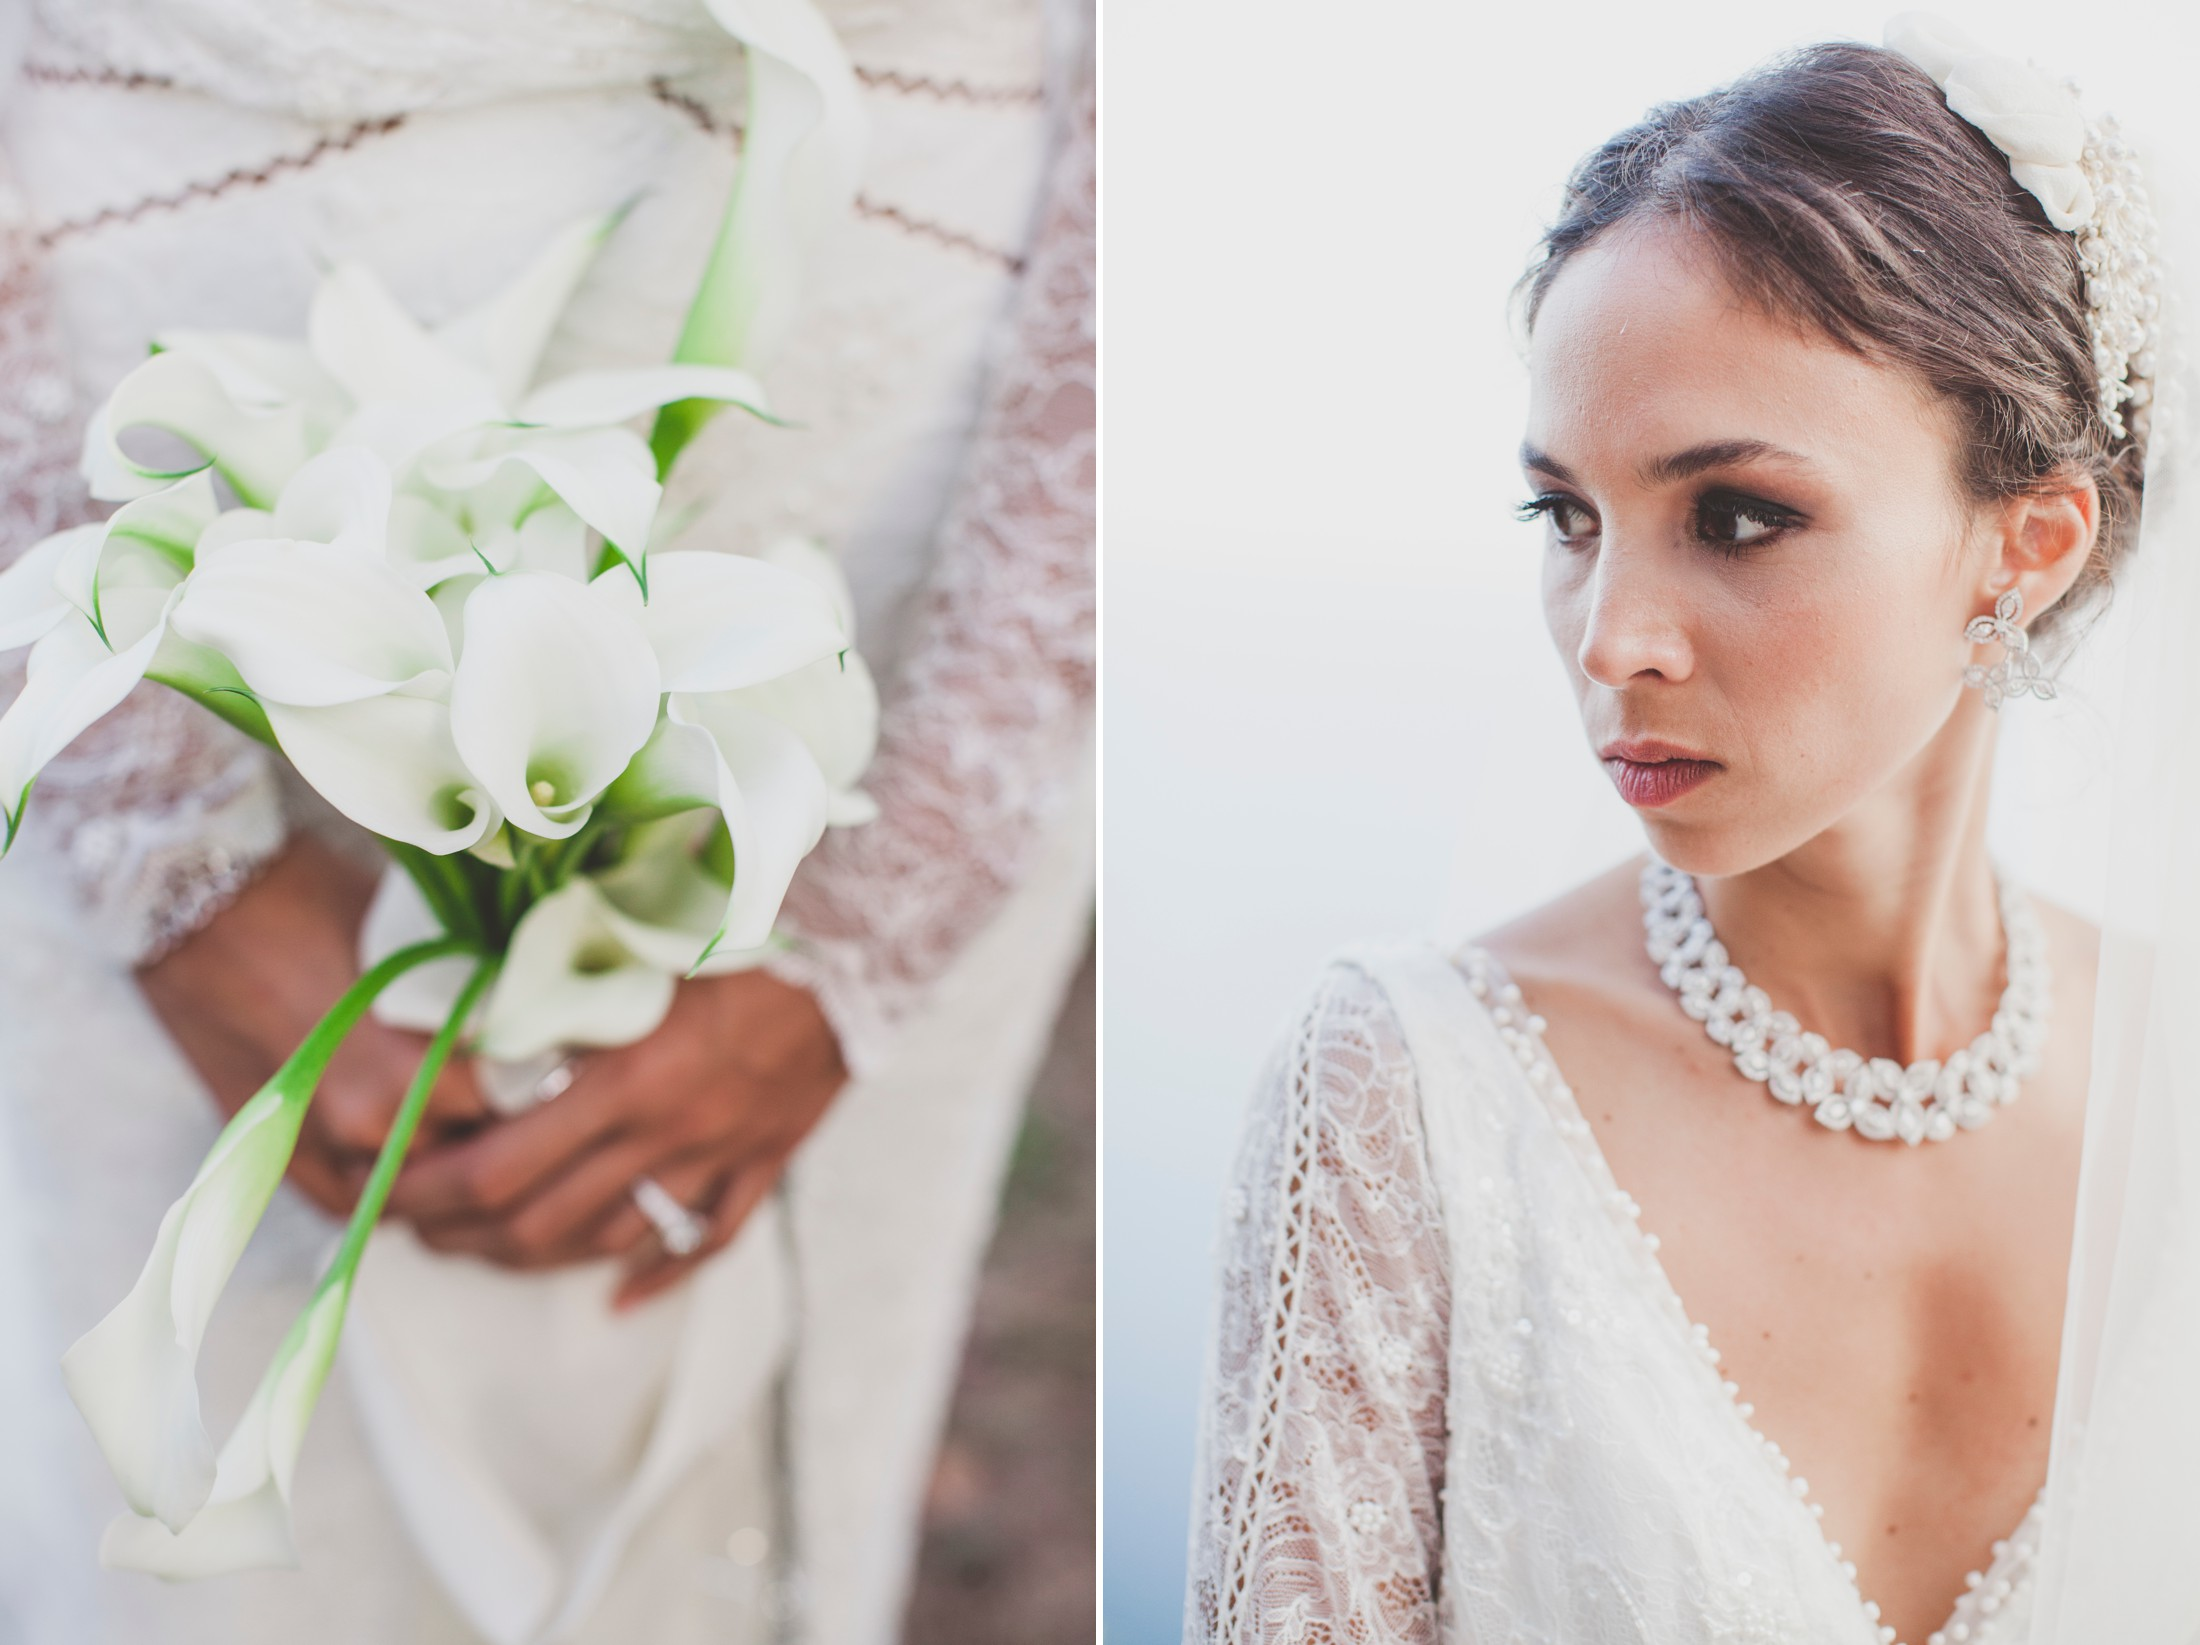 collage bride's portrait and wedding bouquet detail